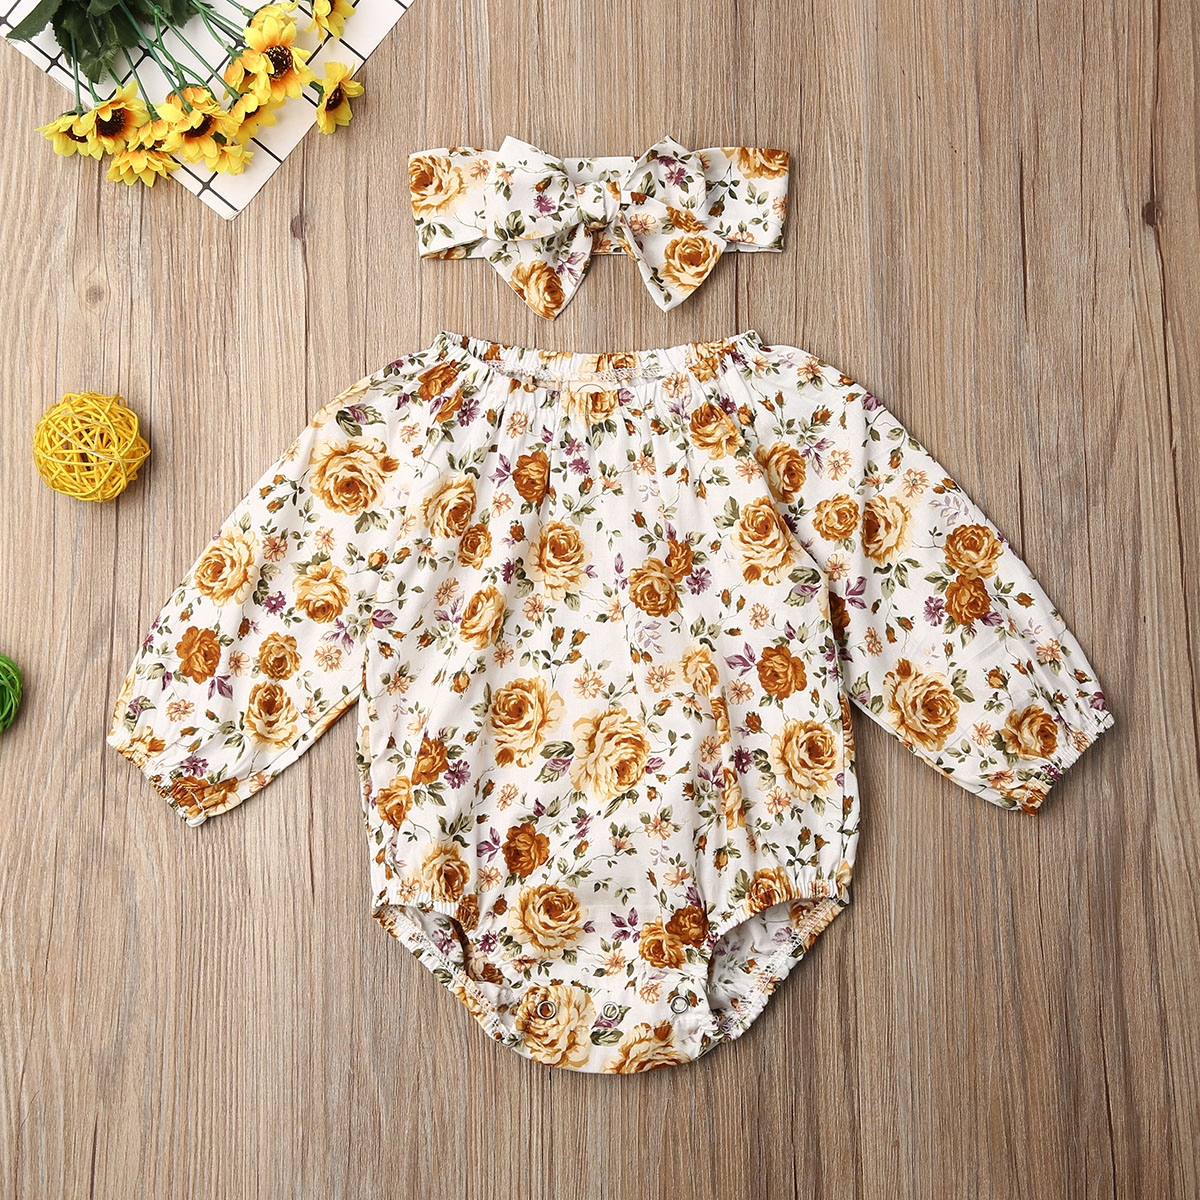 Pudcoco Newborn Baby Girl Clothes Flower Print Long Sleeve Romper Jumpsuit Headband 2Pcs Outfits Cotton Clothes